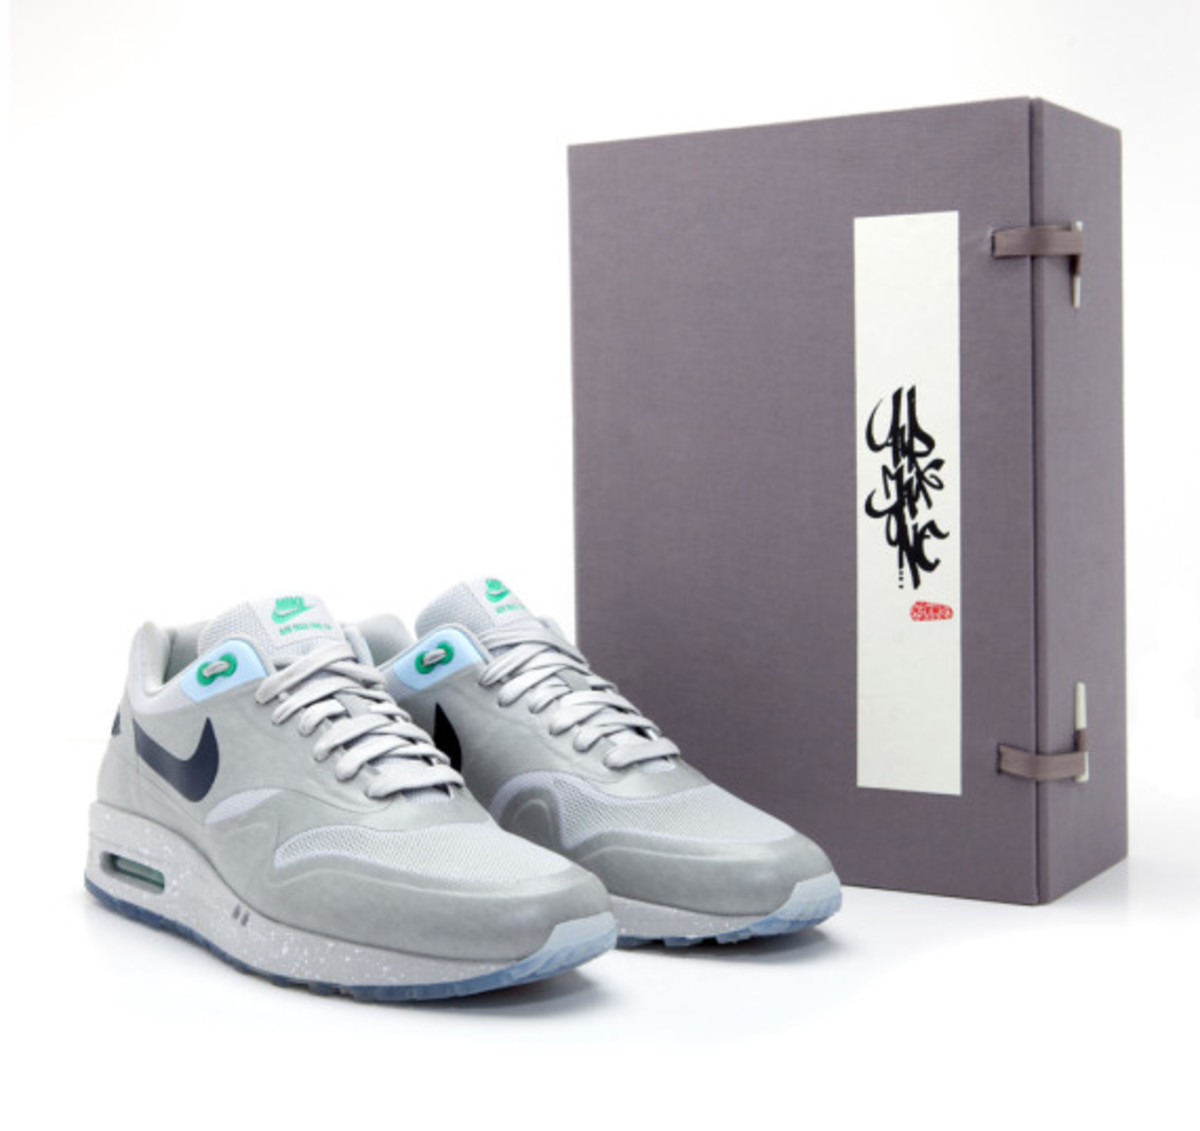 clot-nike-air-max-1-sp-007